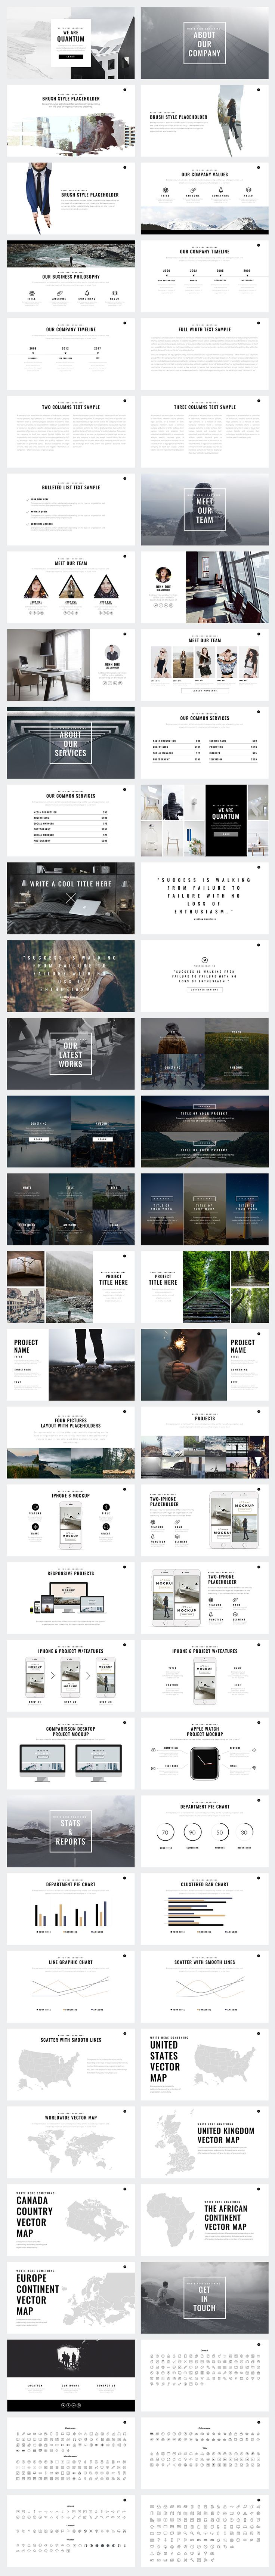 Quantum Minimal Keynote Template by Slidedizer on @creativemarket